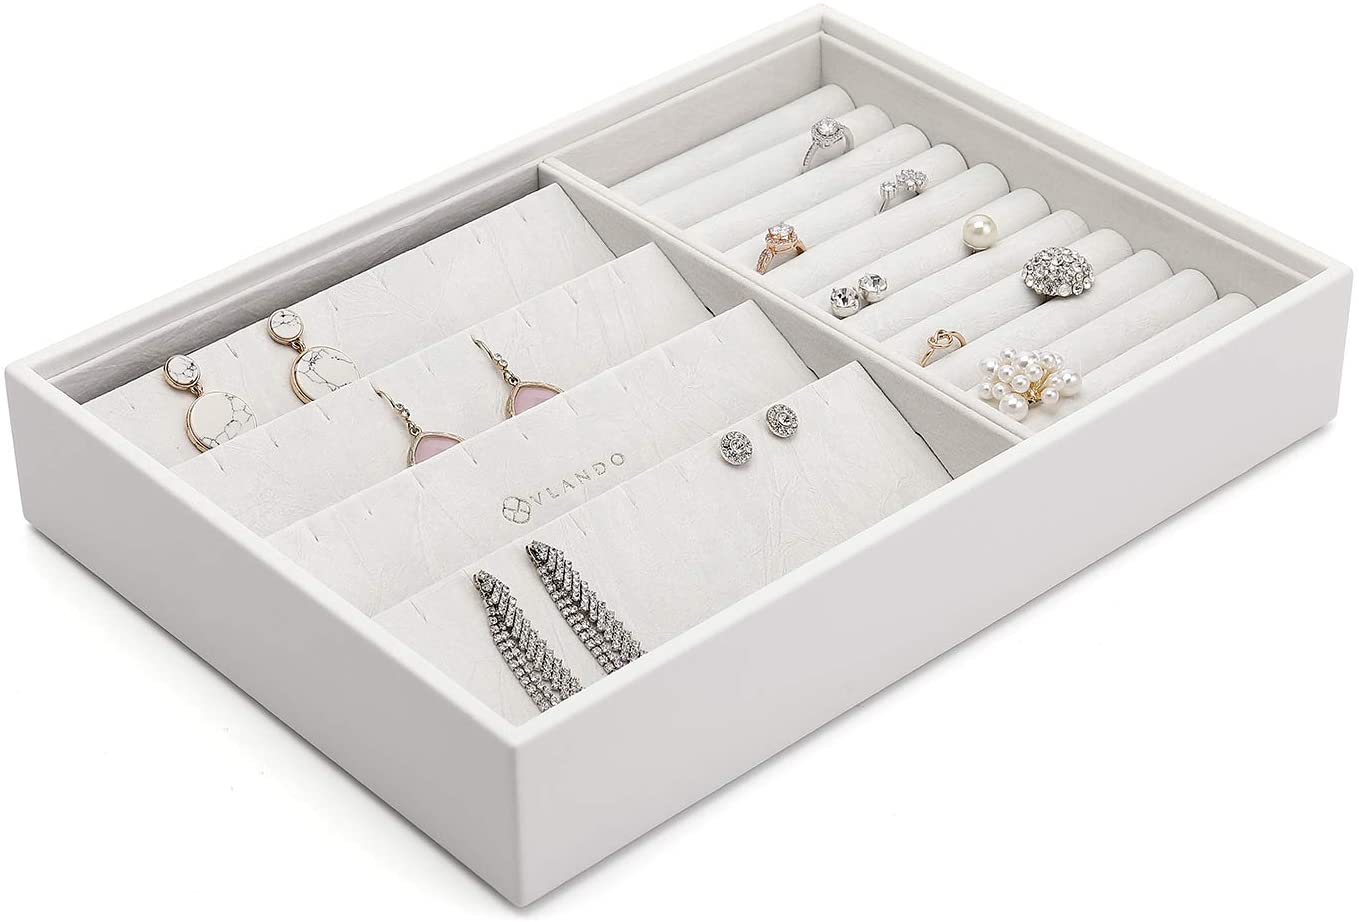 Vlando Stackable Jewelry Tray - Faux Leather Multi-Purpose Jewelry Accessories Display Storage and Earring Necklace Bracelet Rings Organizer (Earrings and Rings Holder, White)